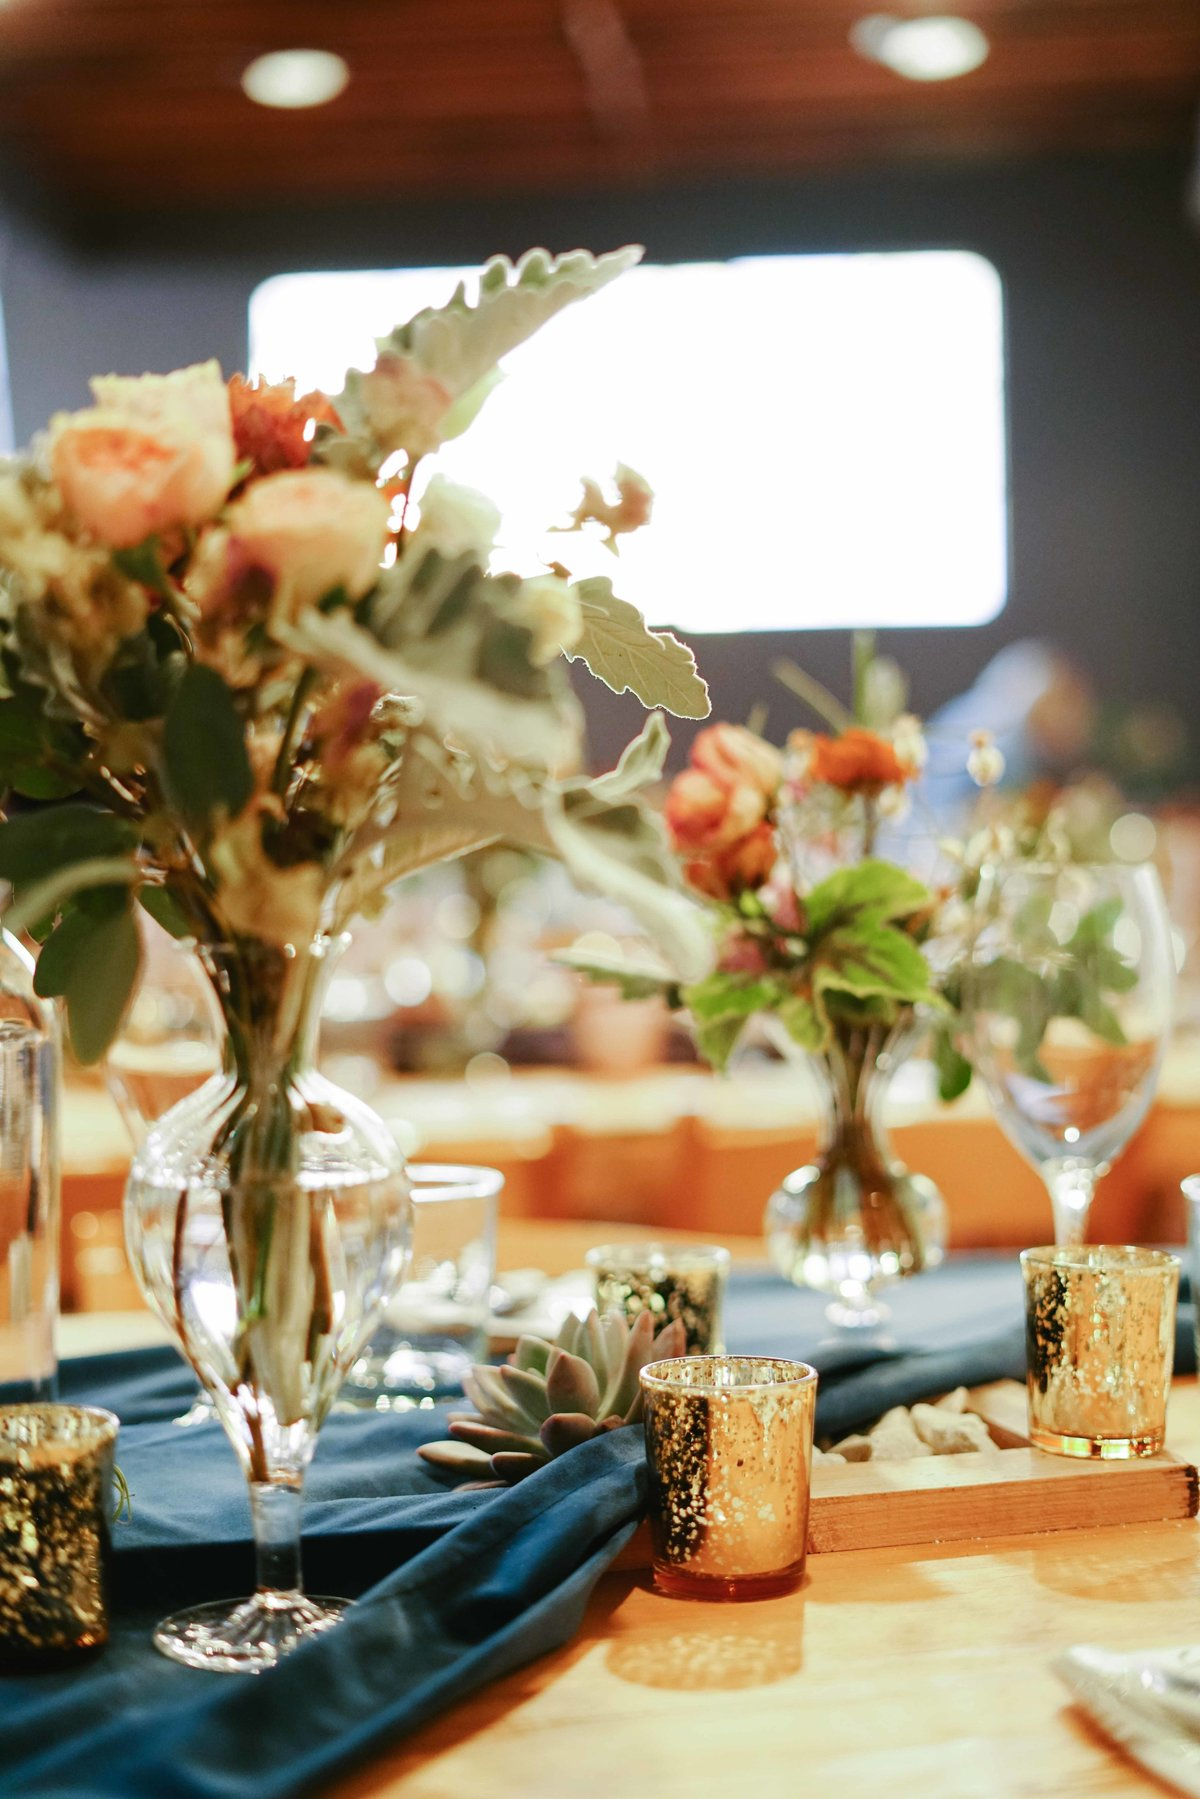 dinner party table setting with blue table runner and peony floral arrangements